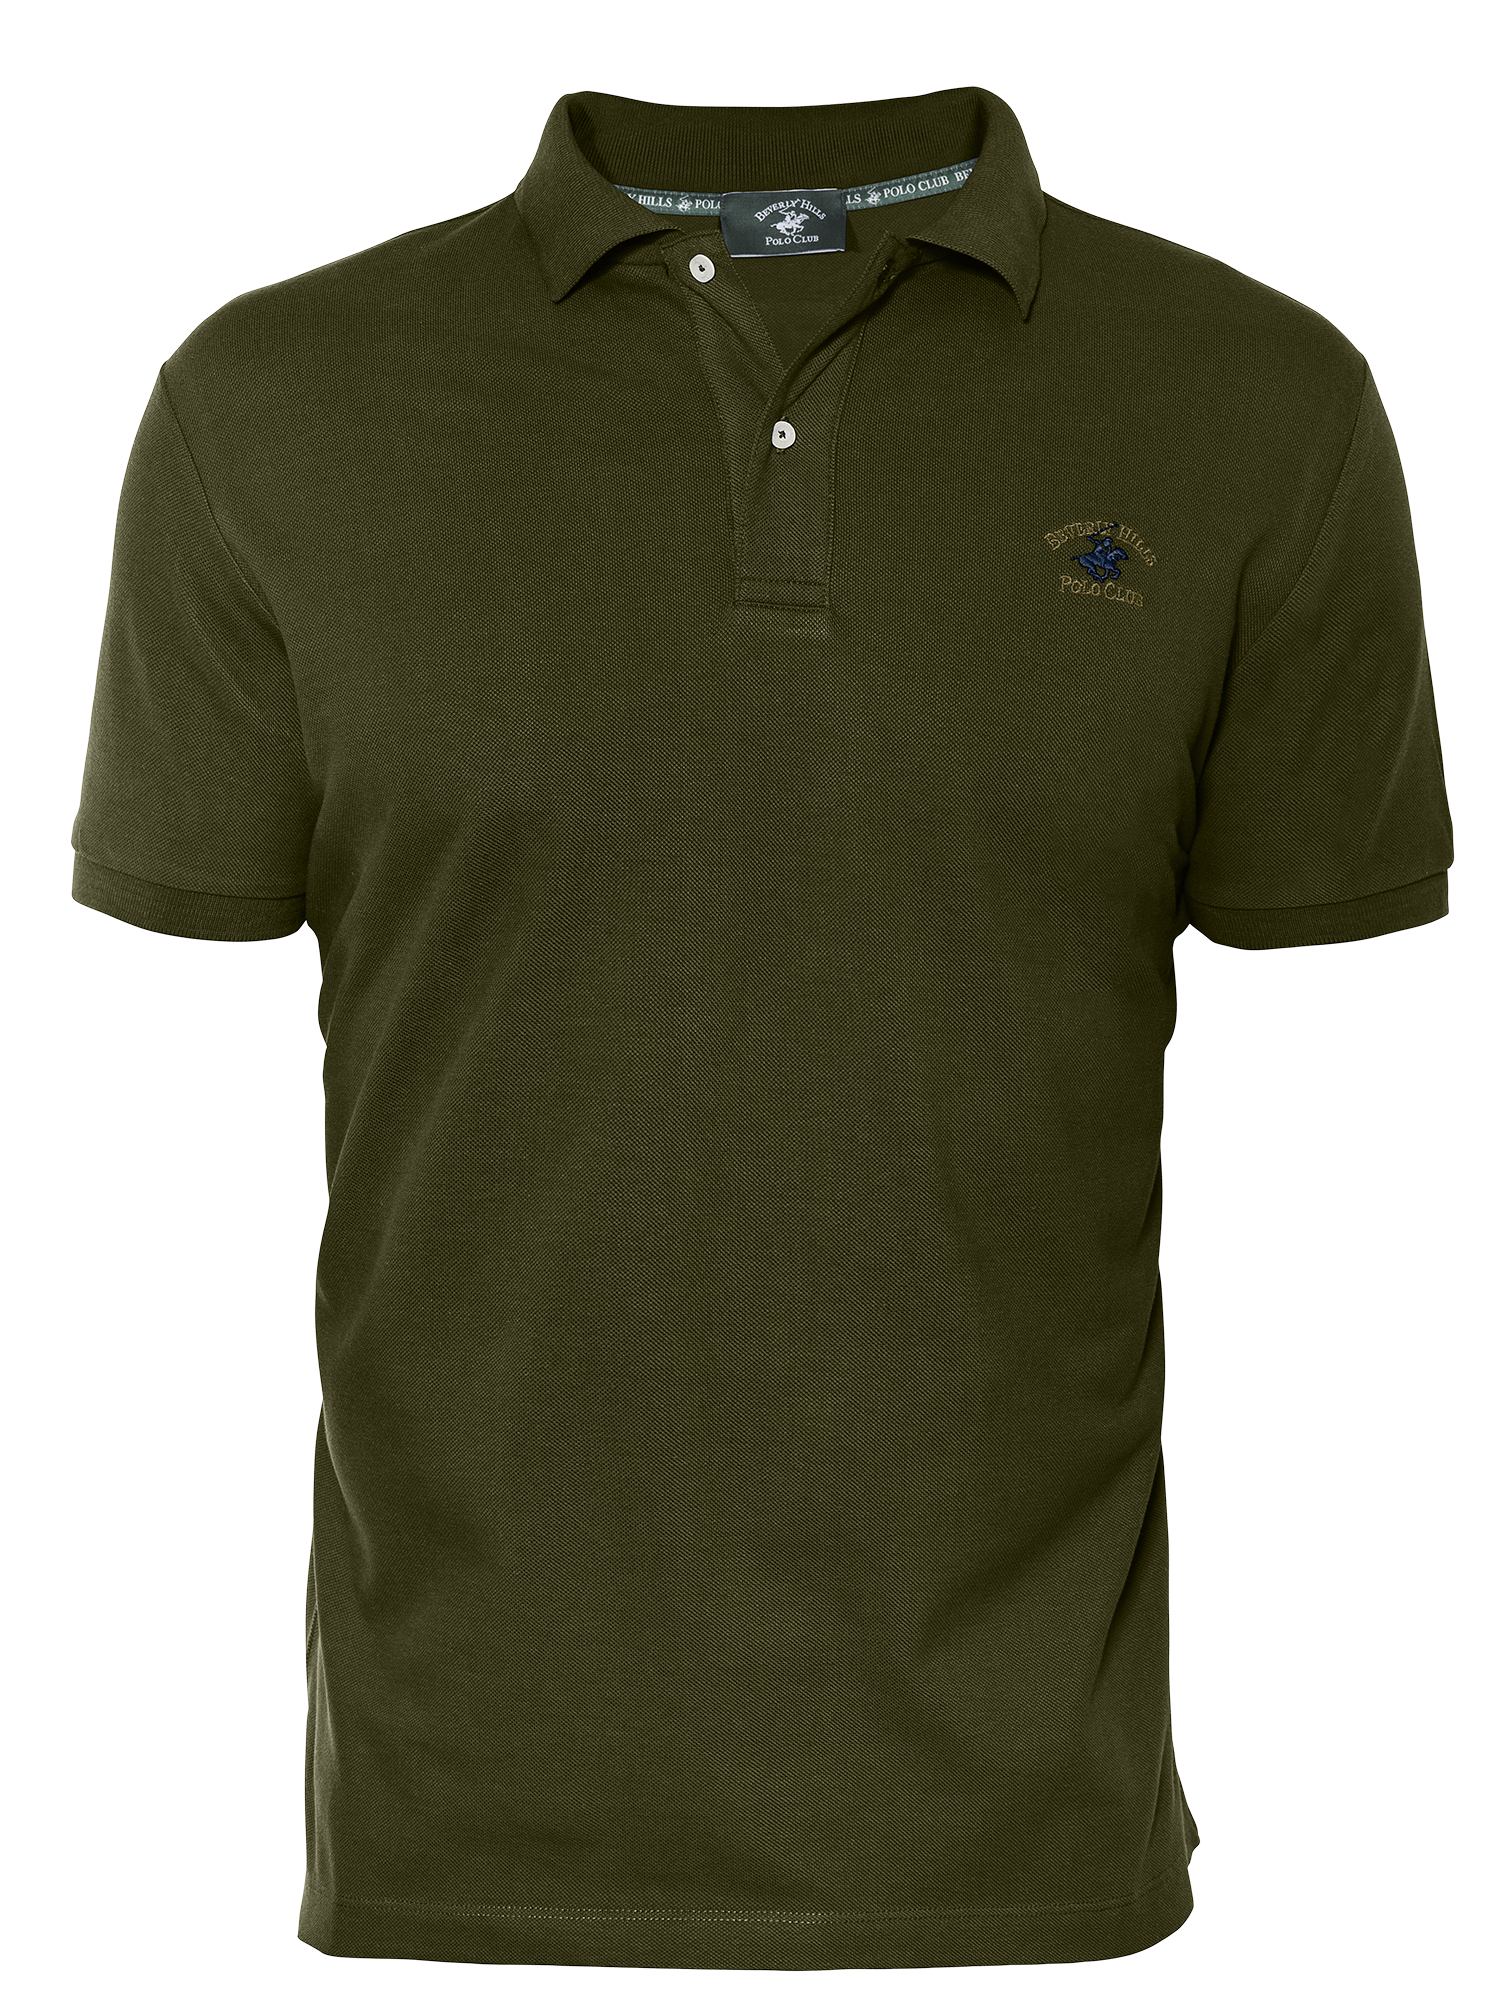 LUXURY PIQUÉ REGULAR FIT HUNTER GREEN POLO